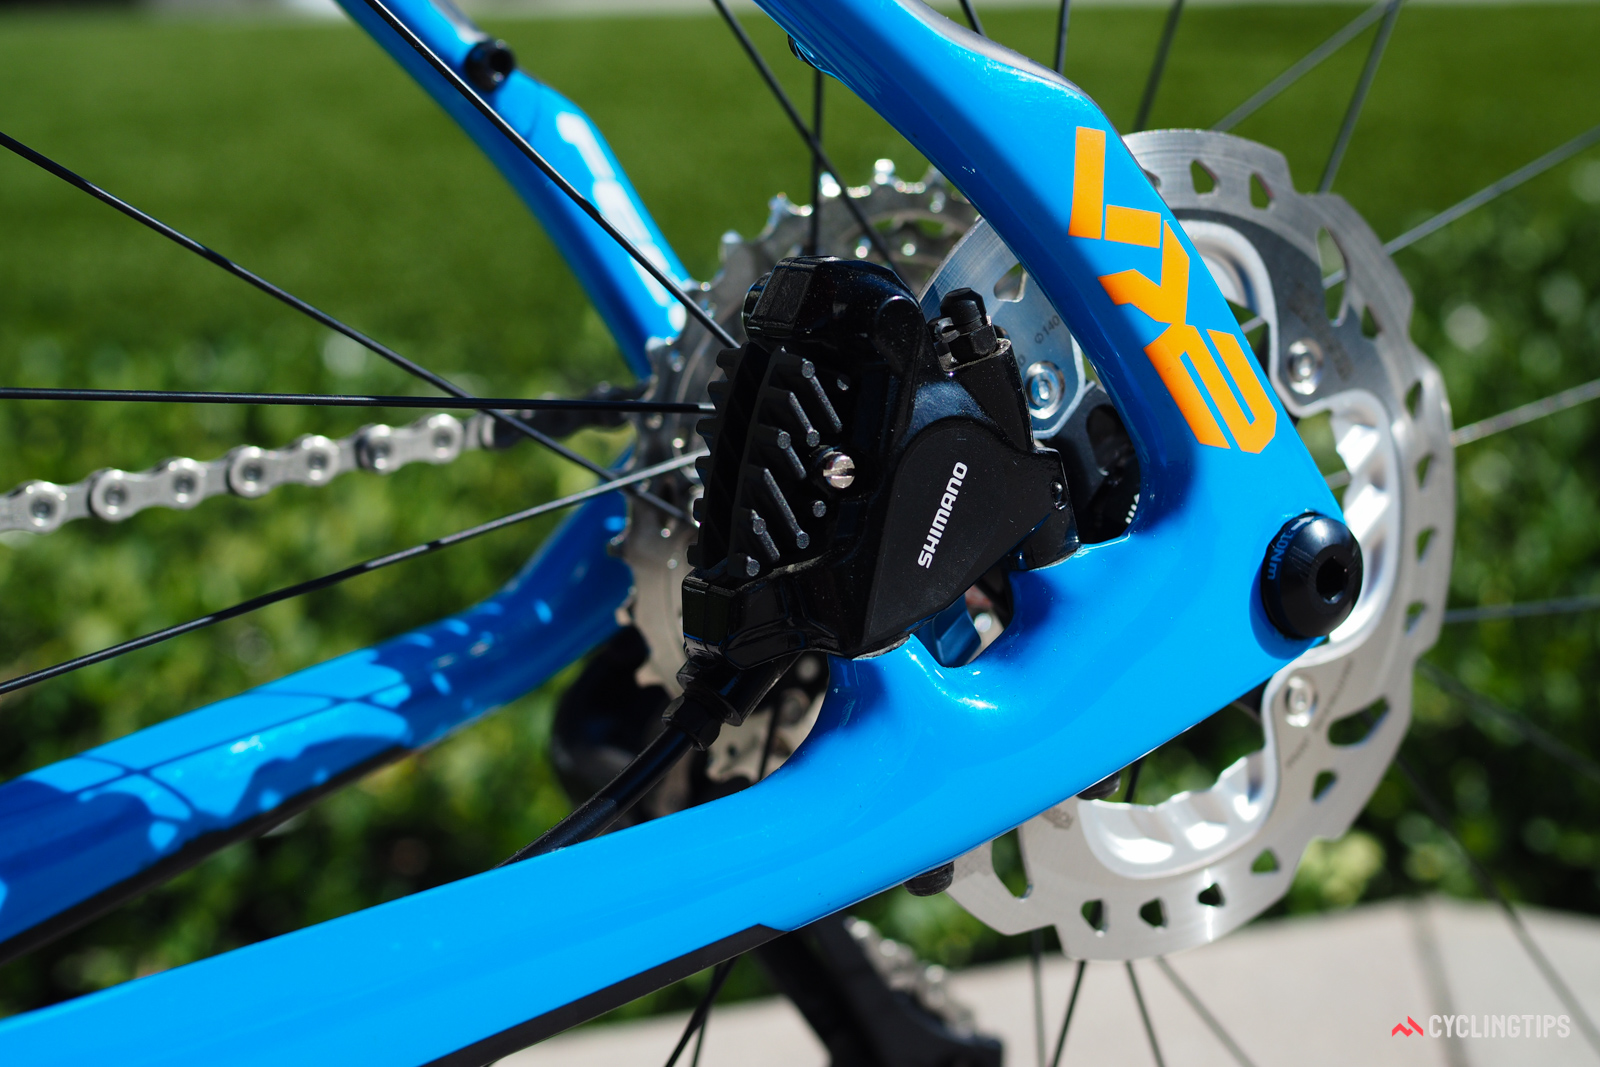 The flat mount brake calipers make for a clean appearance.